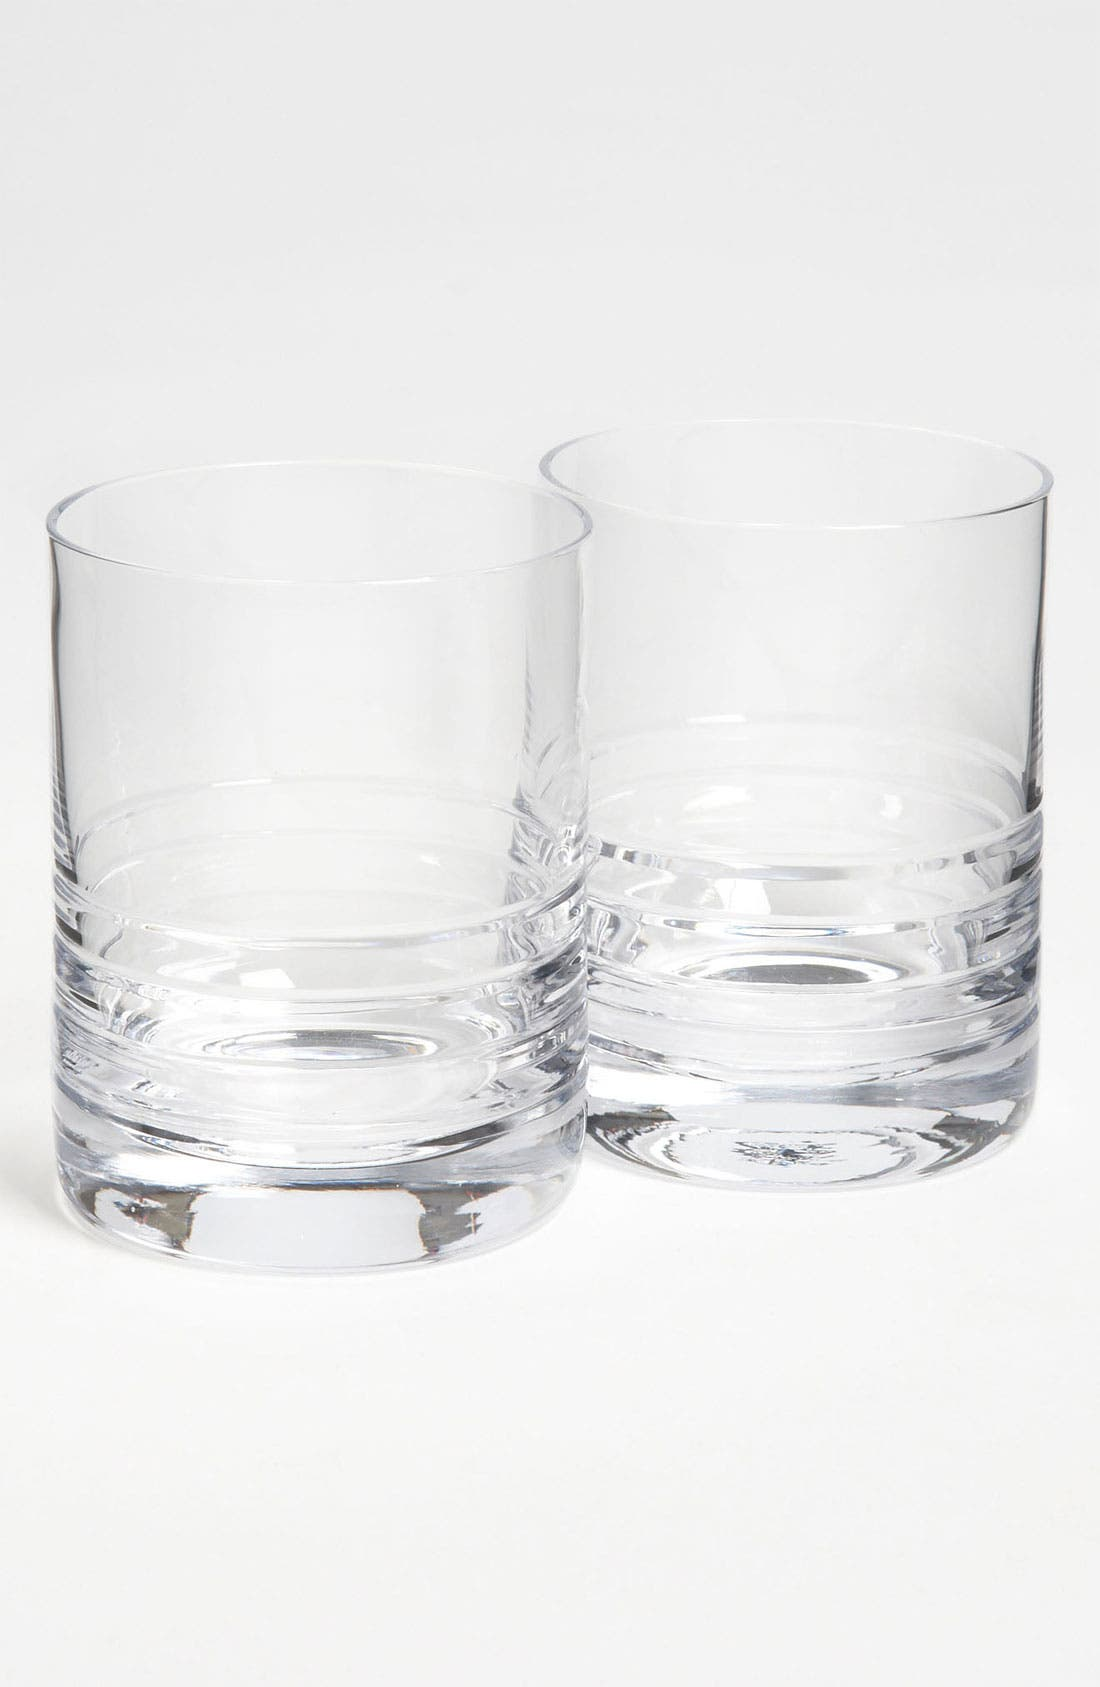 Alternate Image 1 Selected - kate spade new york 'percival place' glasses (set of 2)